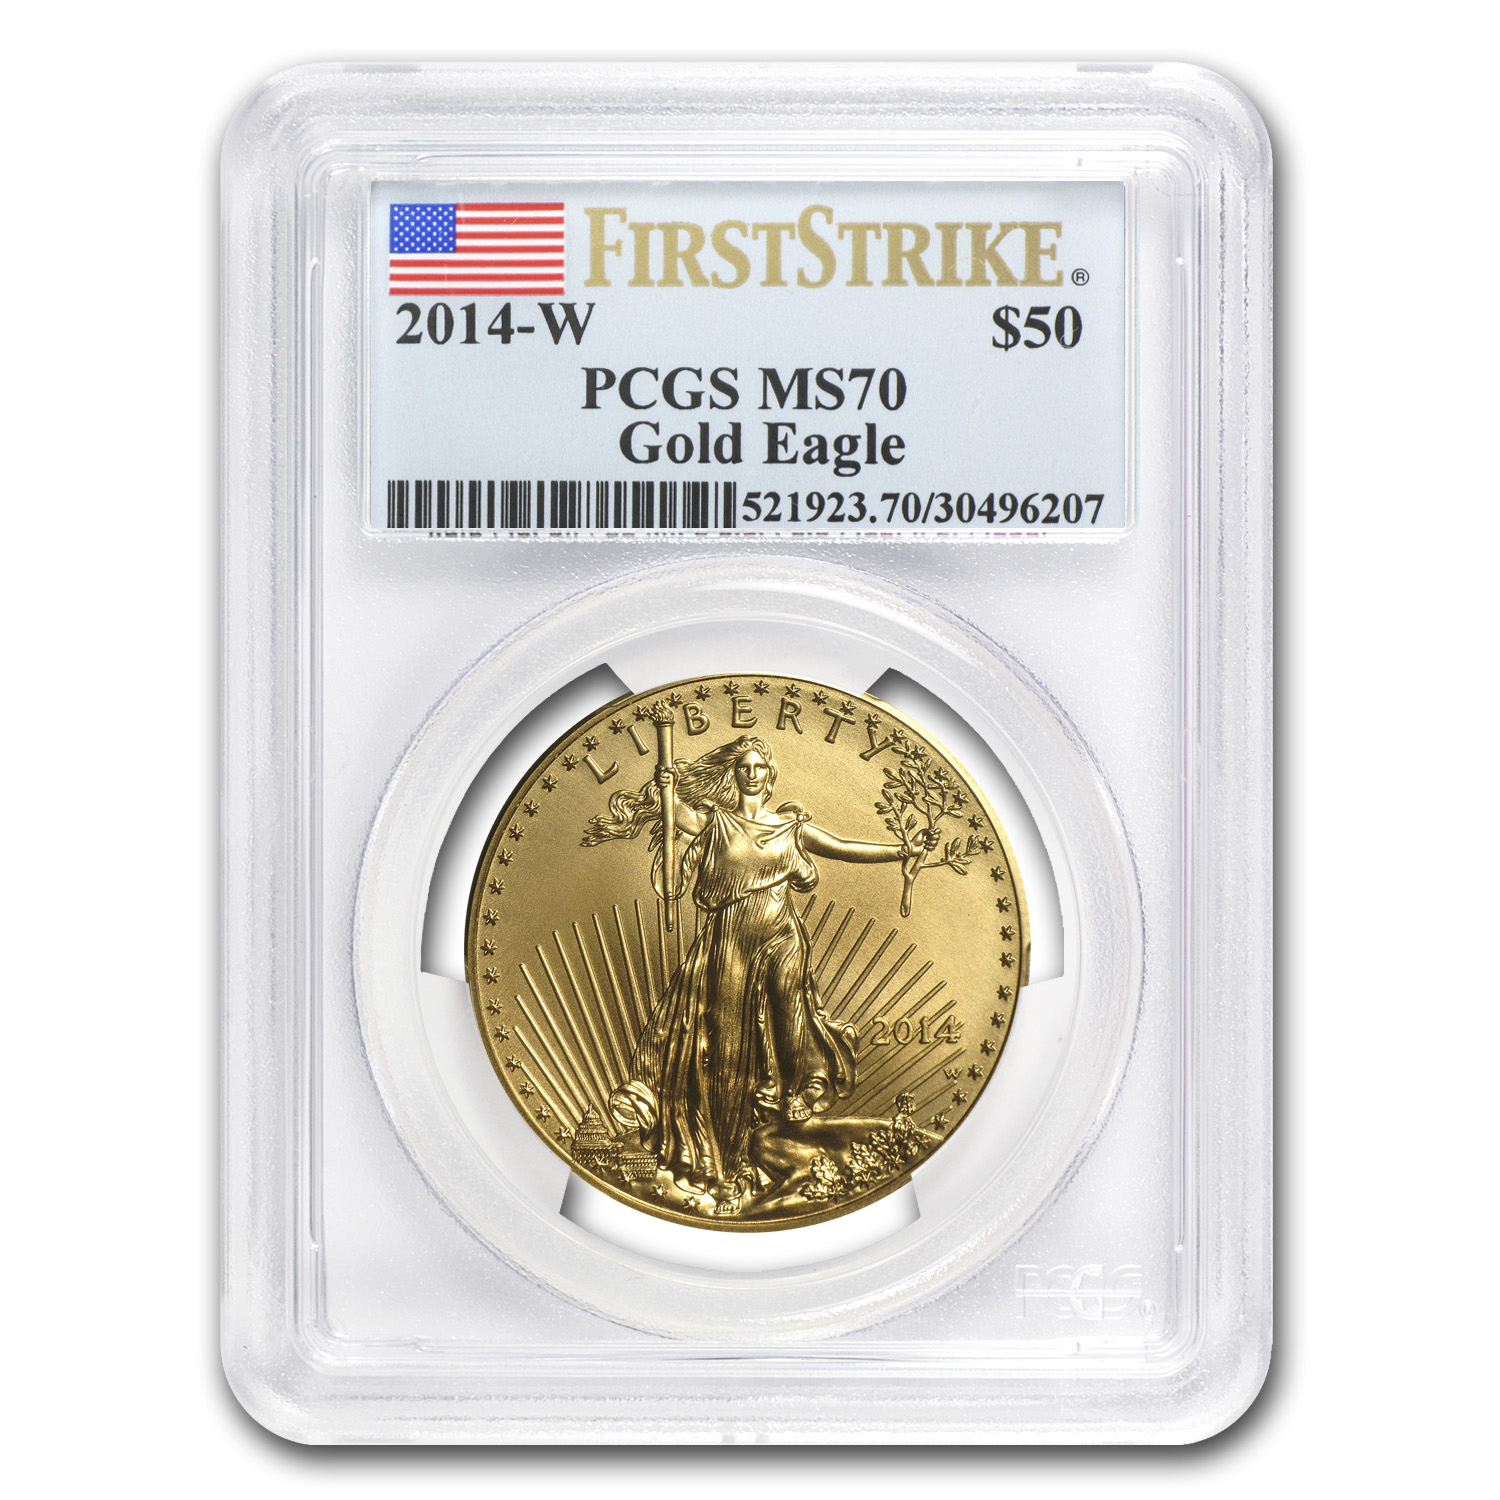 2014-W 1 oz Burnished Gold Eagle MS-70 PCGS First Strike